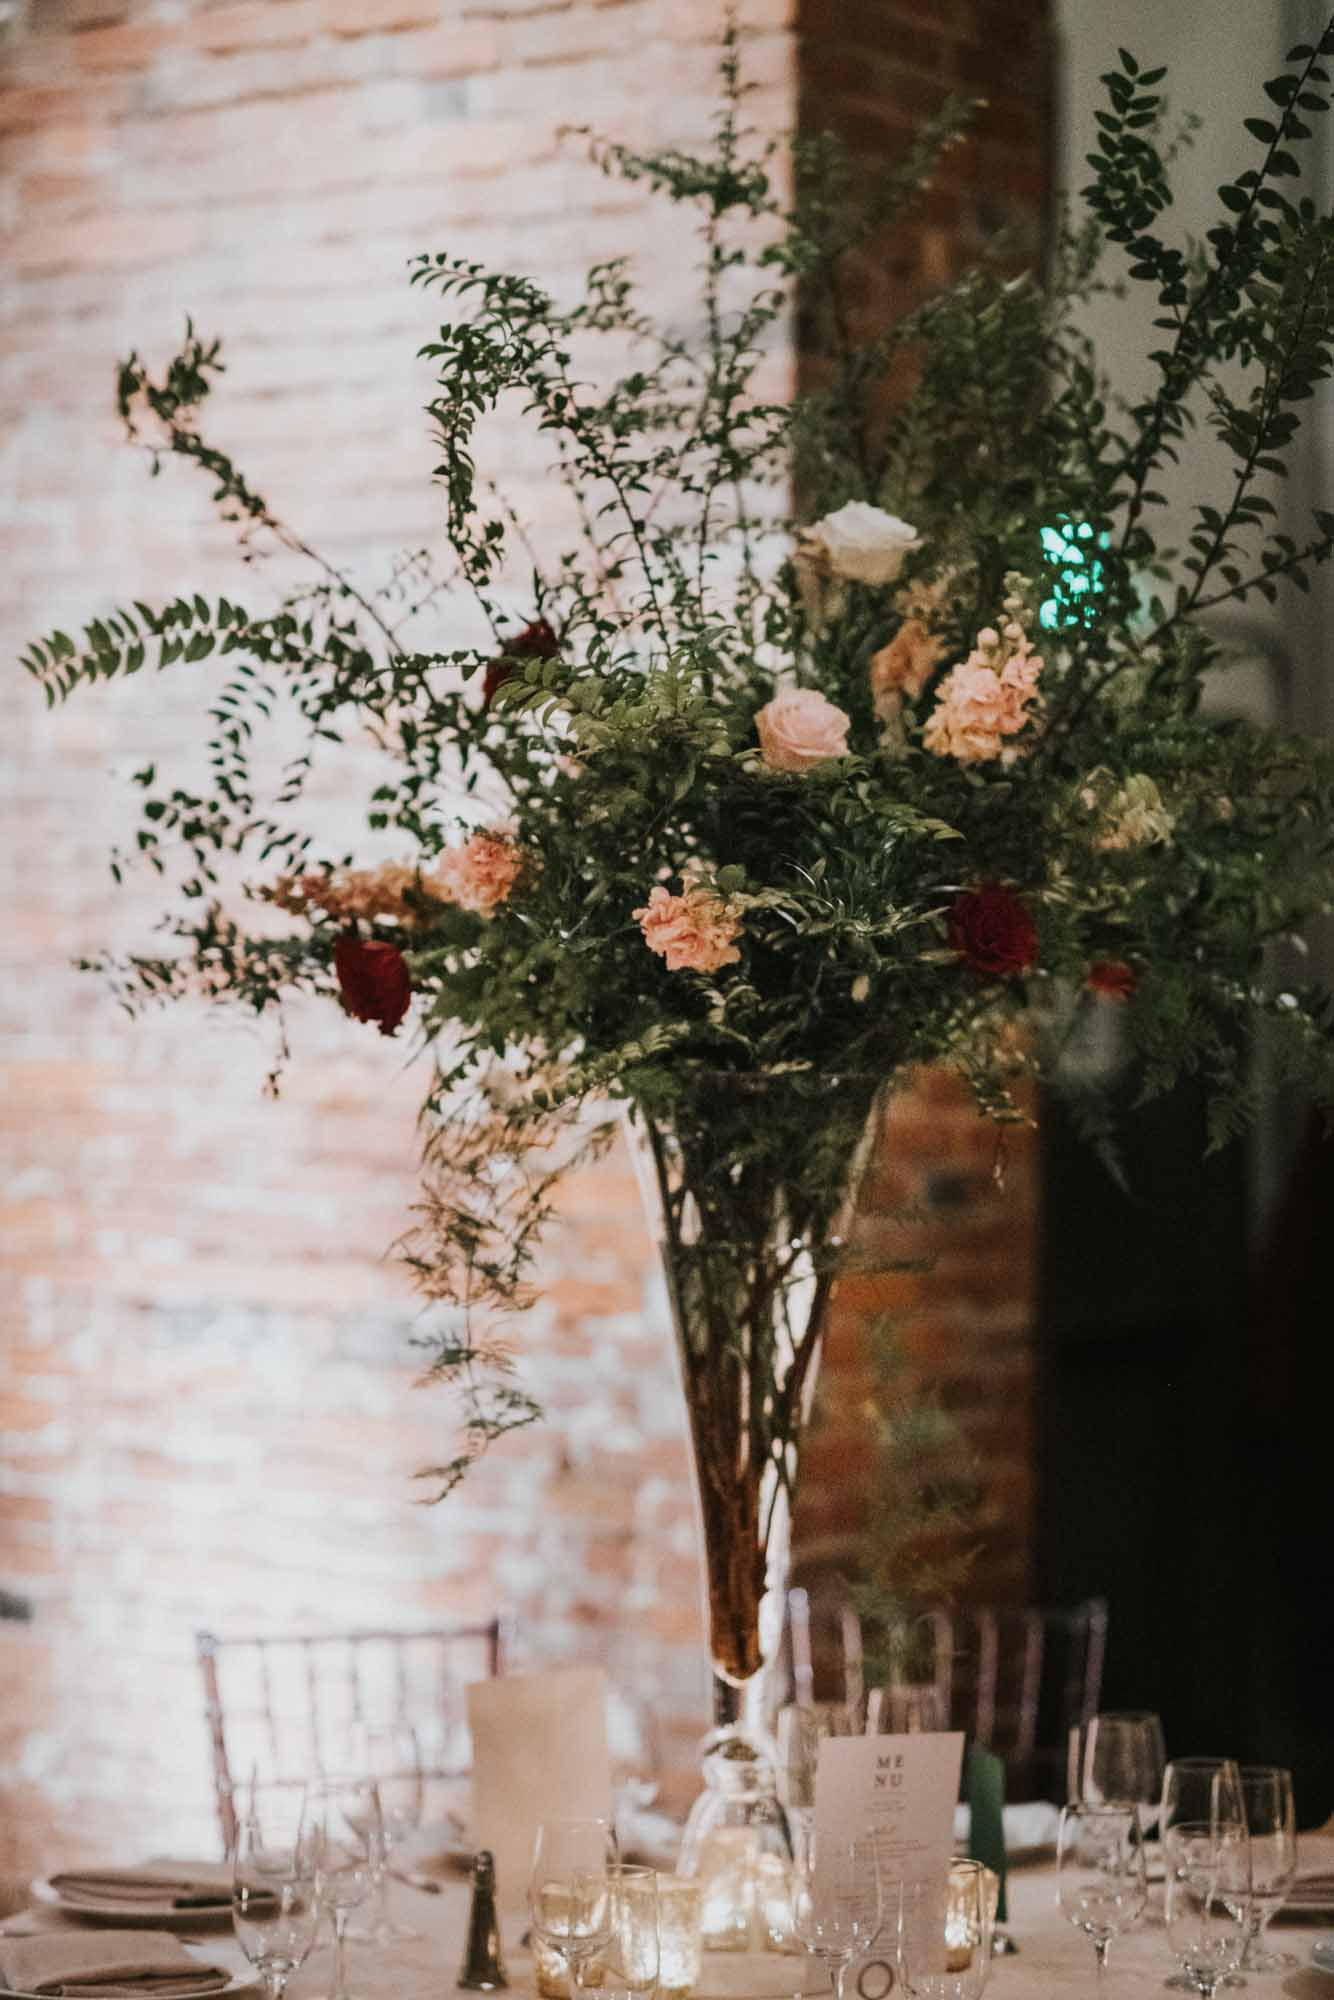 Tall centerpiece with greenery, blush, and burgundy flowers